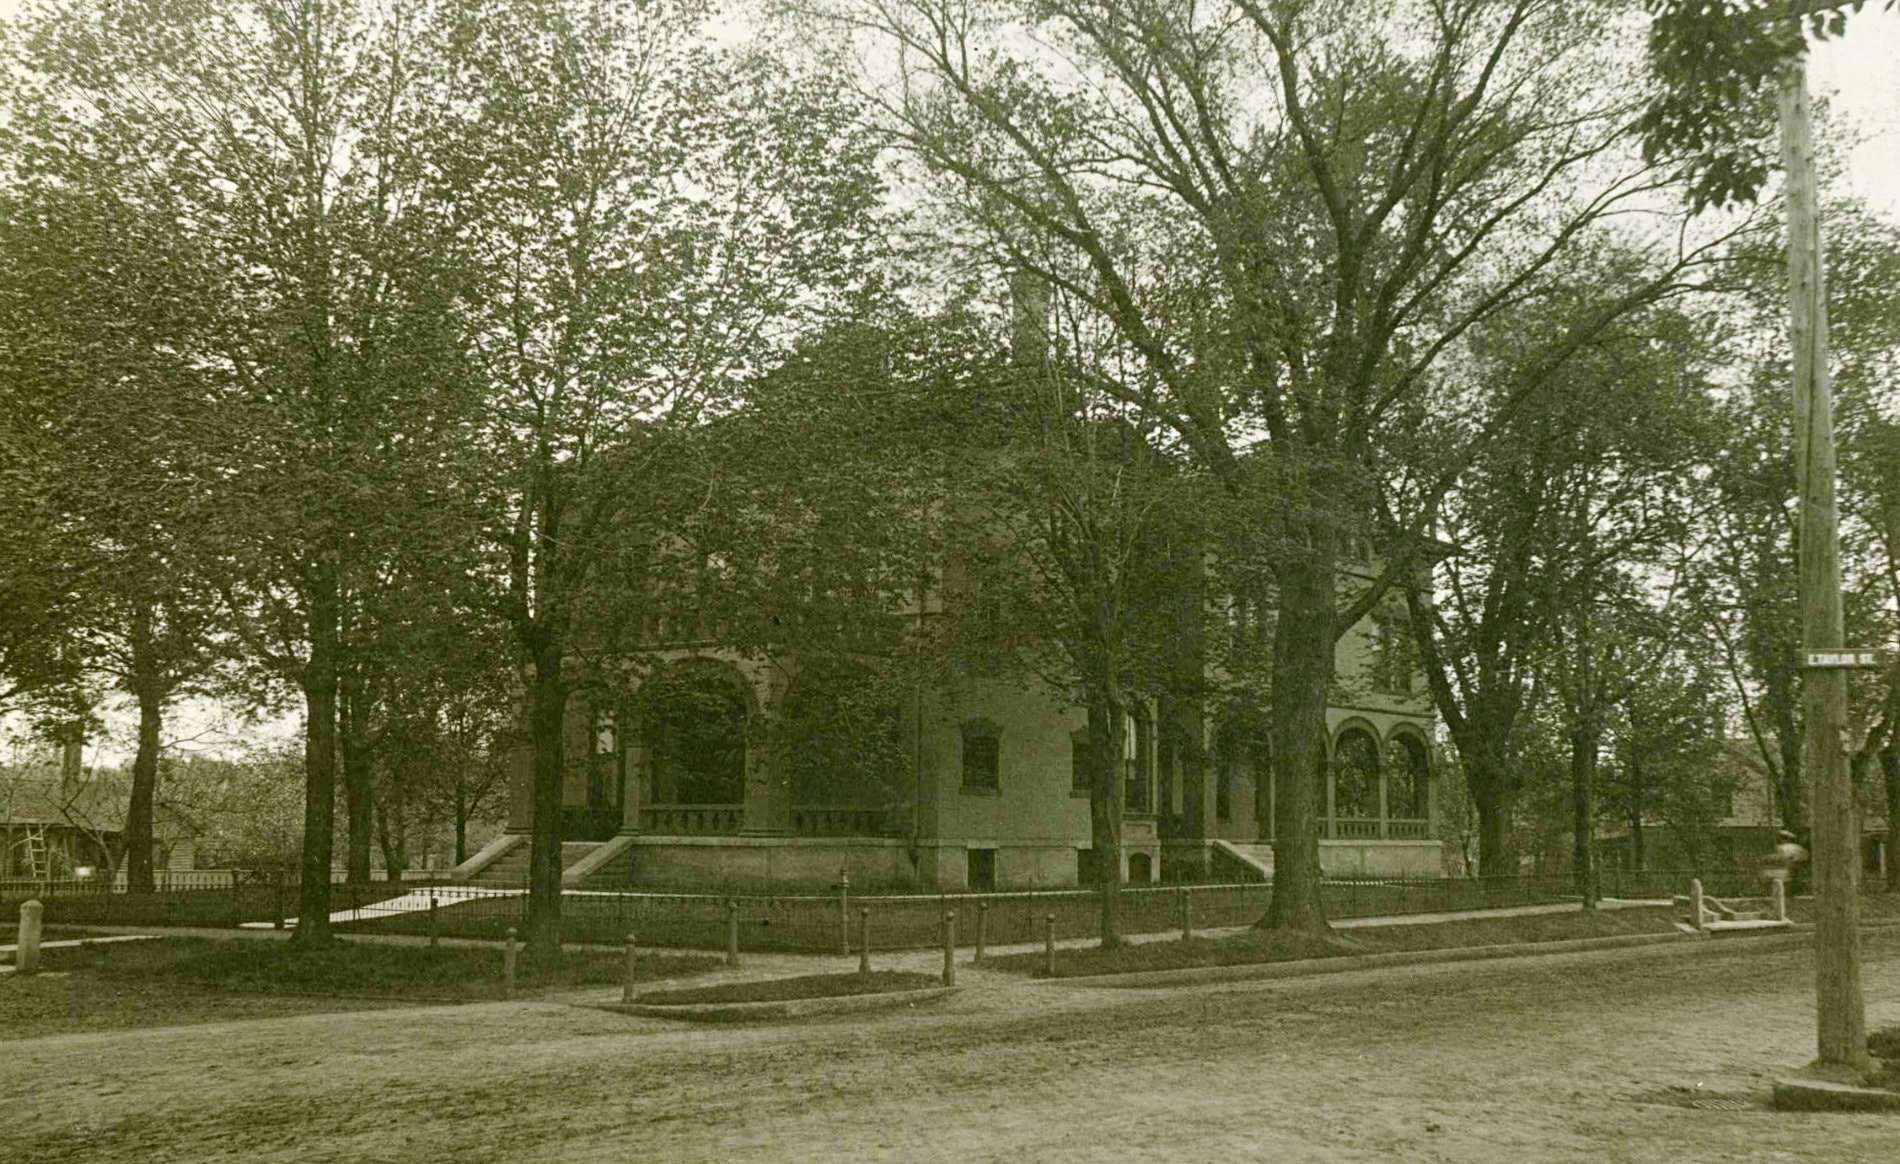 Black and white photo of the Vrooman mansion with arched windows and doors surrounded by trees